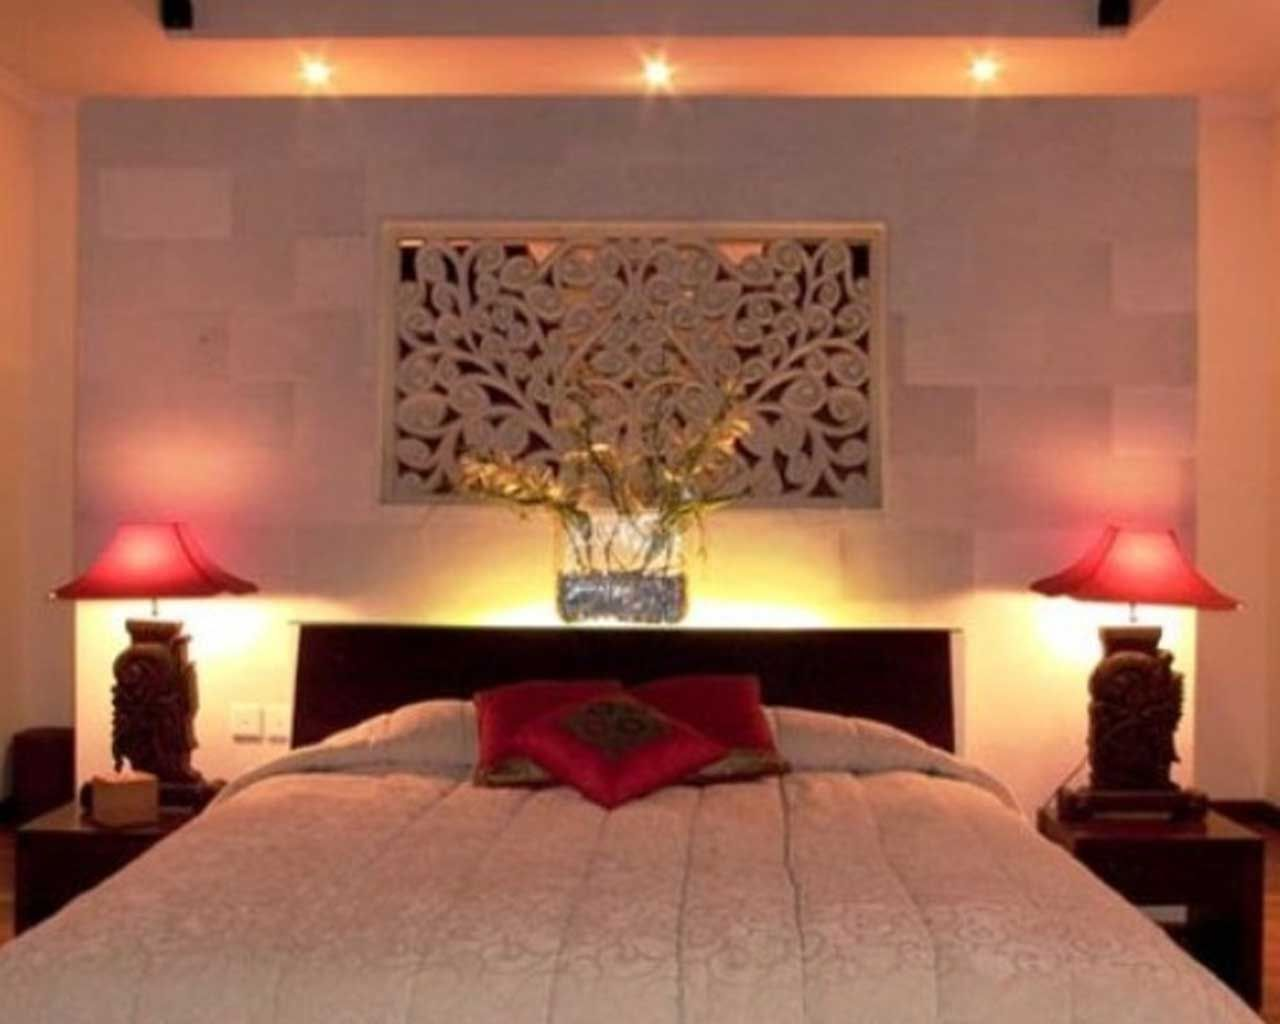 Romantic bedroom master bedroom bedroom decor ideas  Pin by DIVALICIOUS on Come to bed  Pinterest  Romantic Bedrooms